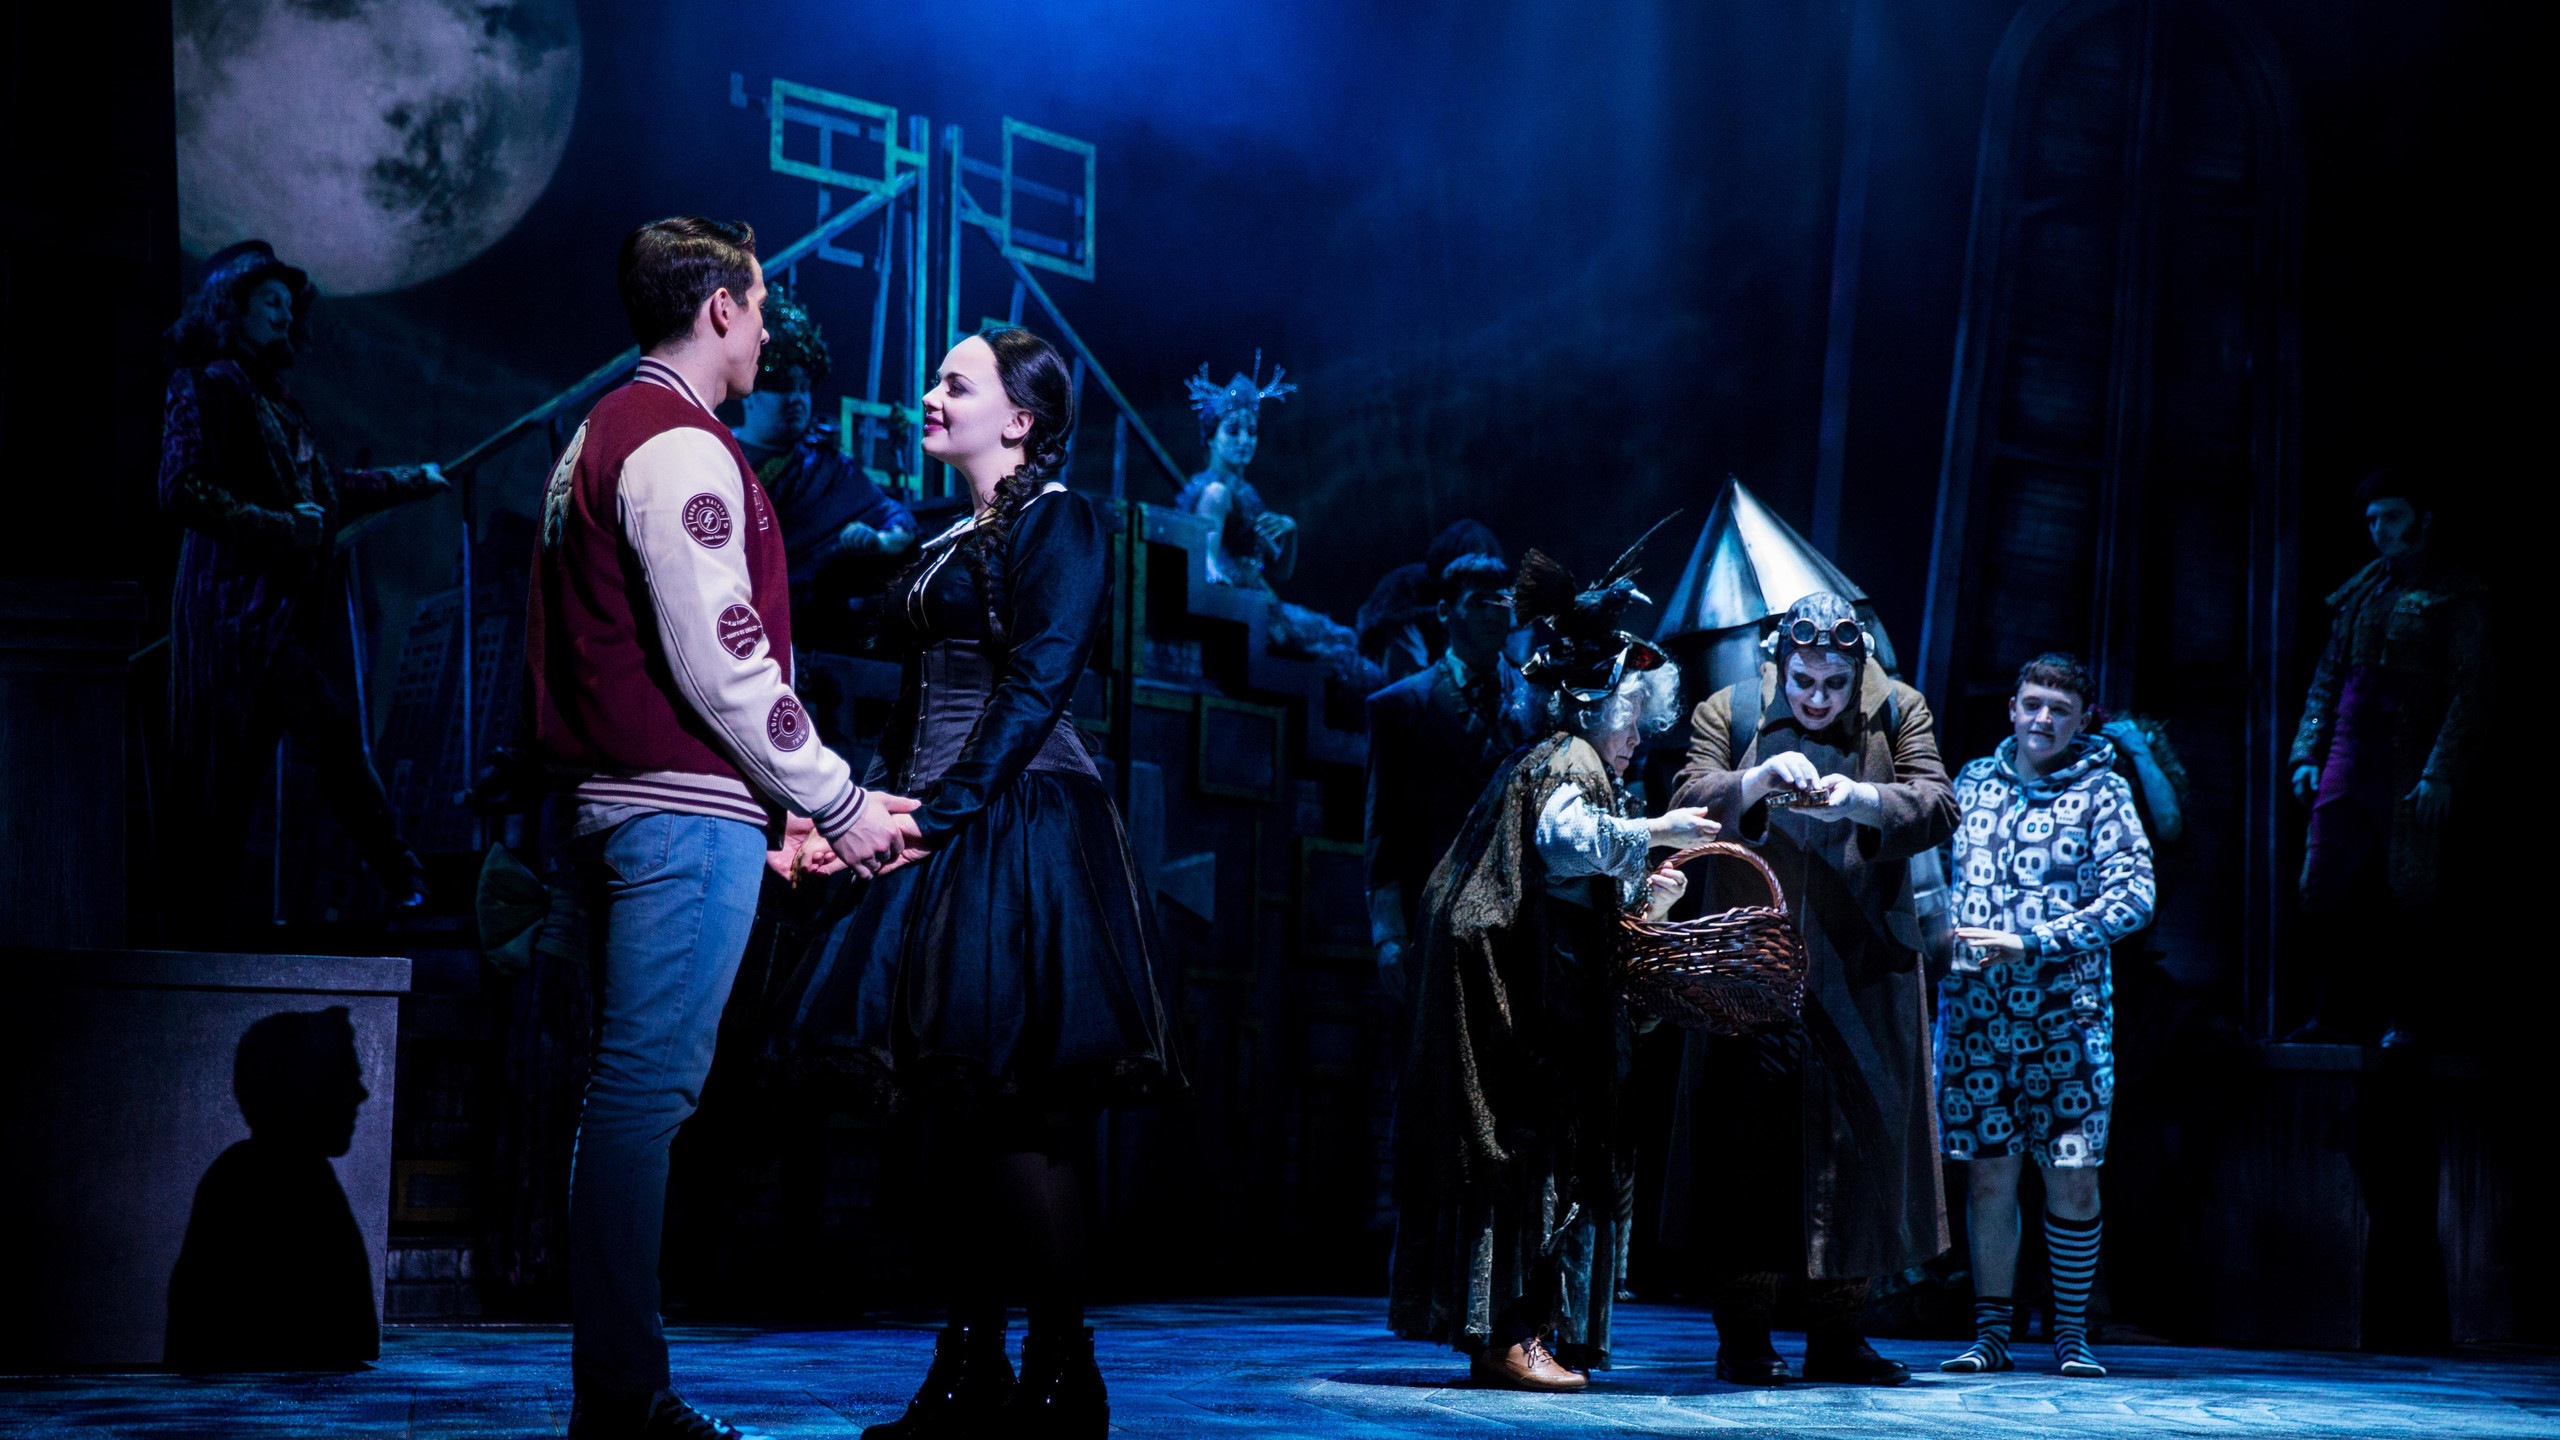 Oliver Ormson, Carrie Hope Fletcher, Valda Aviks, Les Dennis and Grant McIntyre in THE ADDAMS FAMILY. Credit Matt Martin